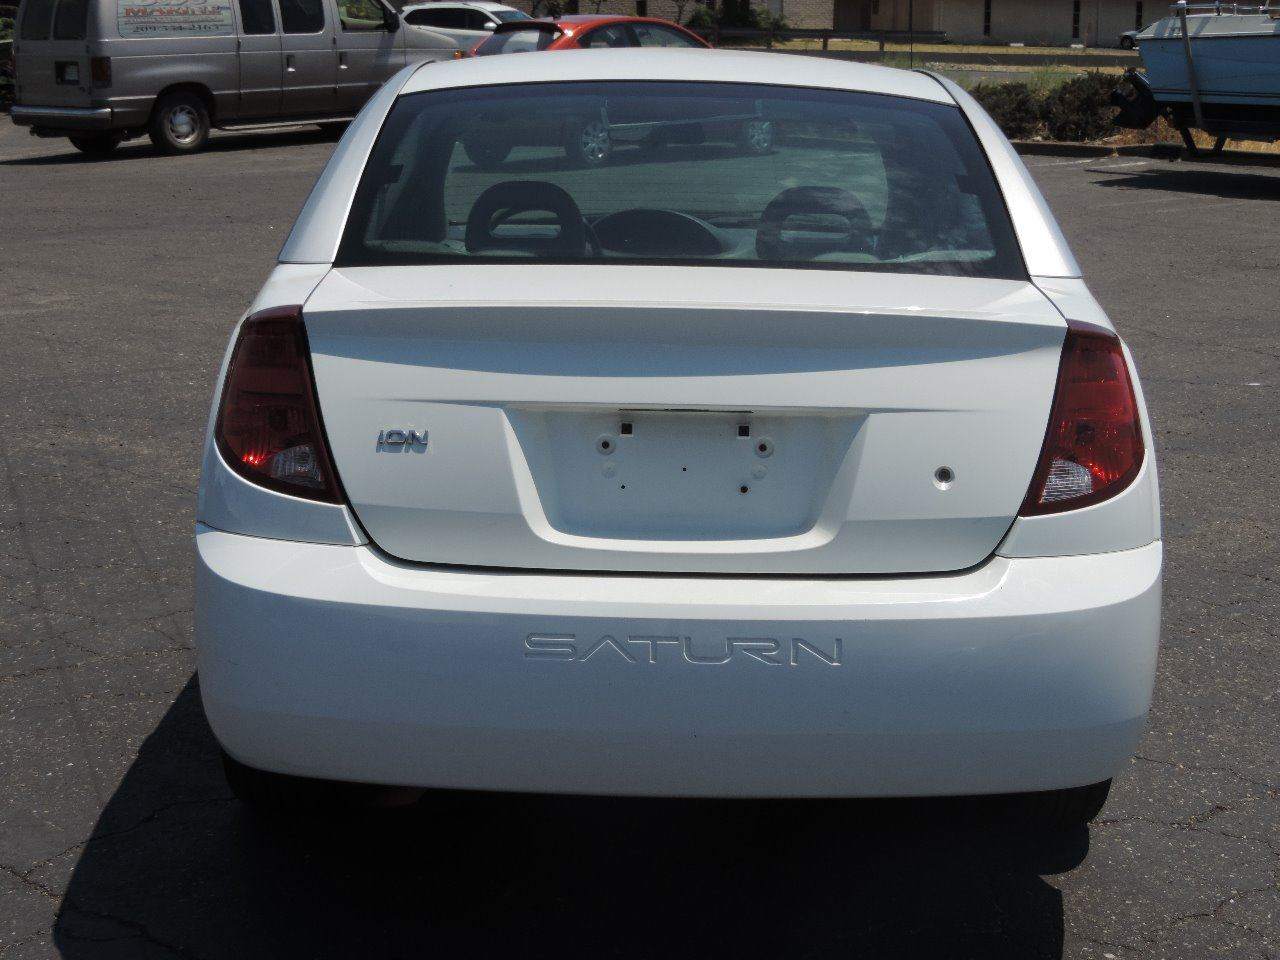 2003 Saturn Ion 2 4dr Sedan In Modesto Ca Valley Auto Outlet 3 Contact